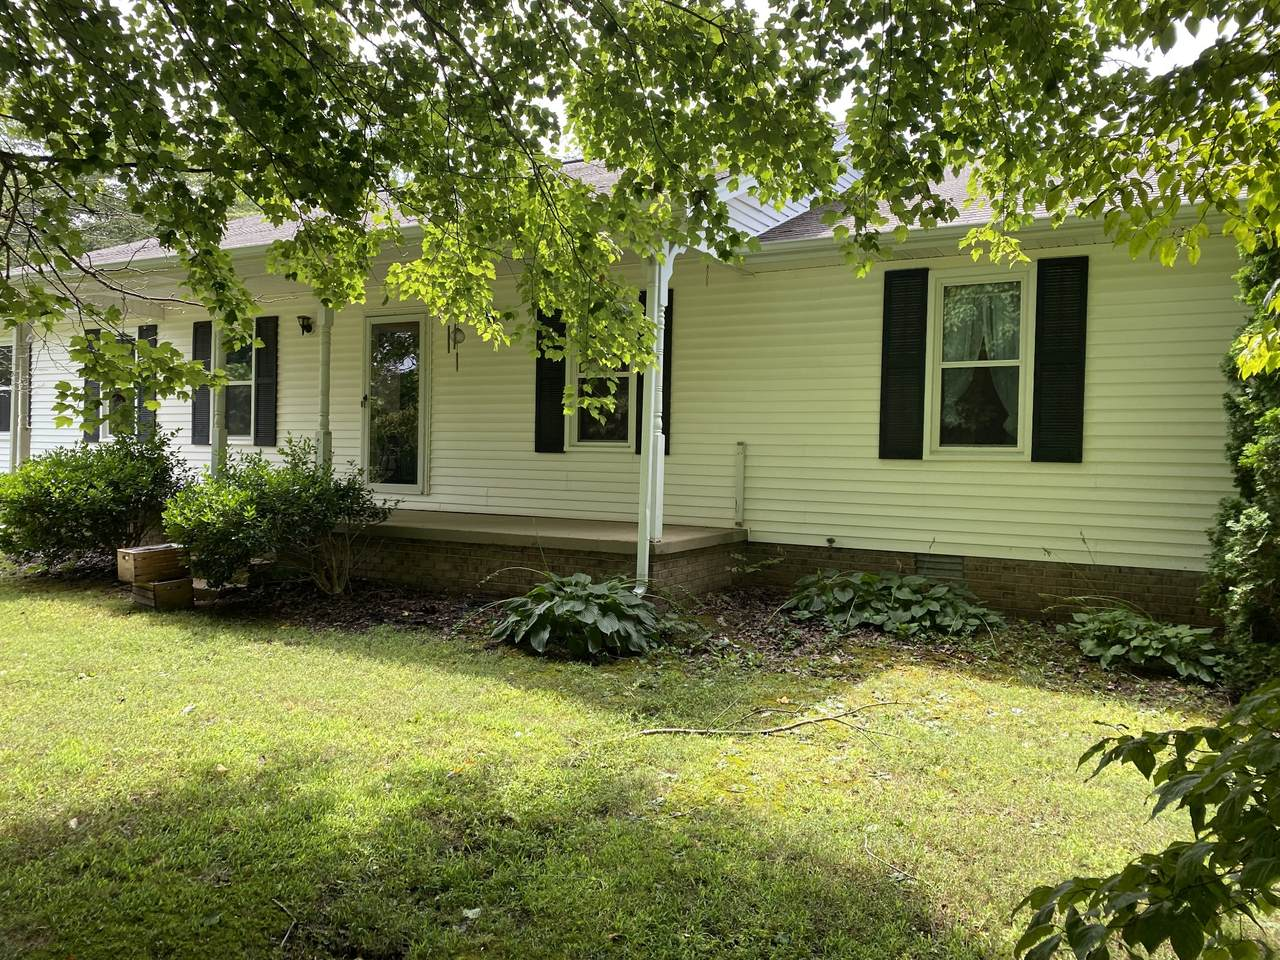 224 Old Columbia Rd - Photo 1